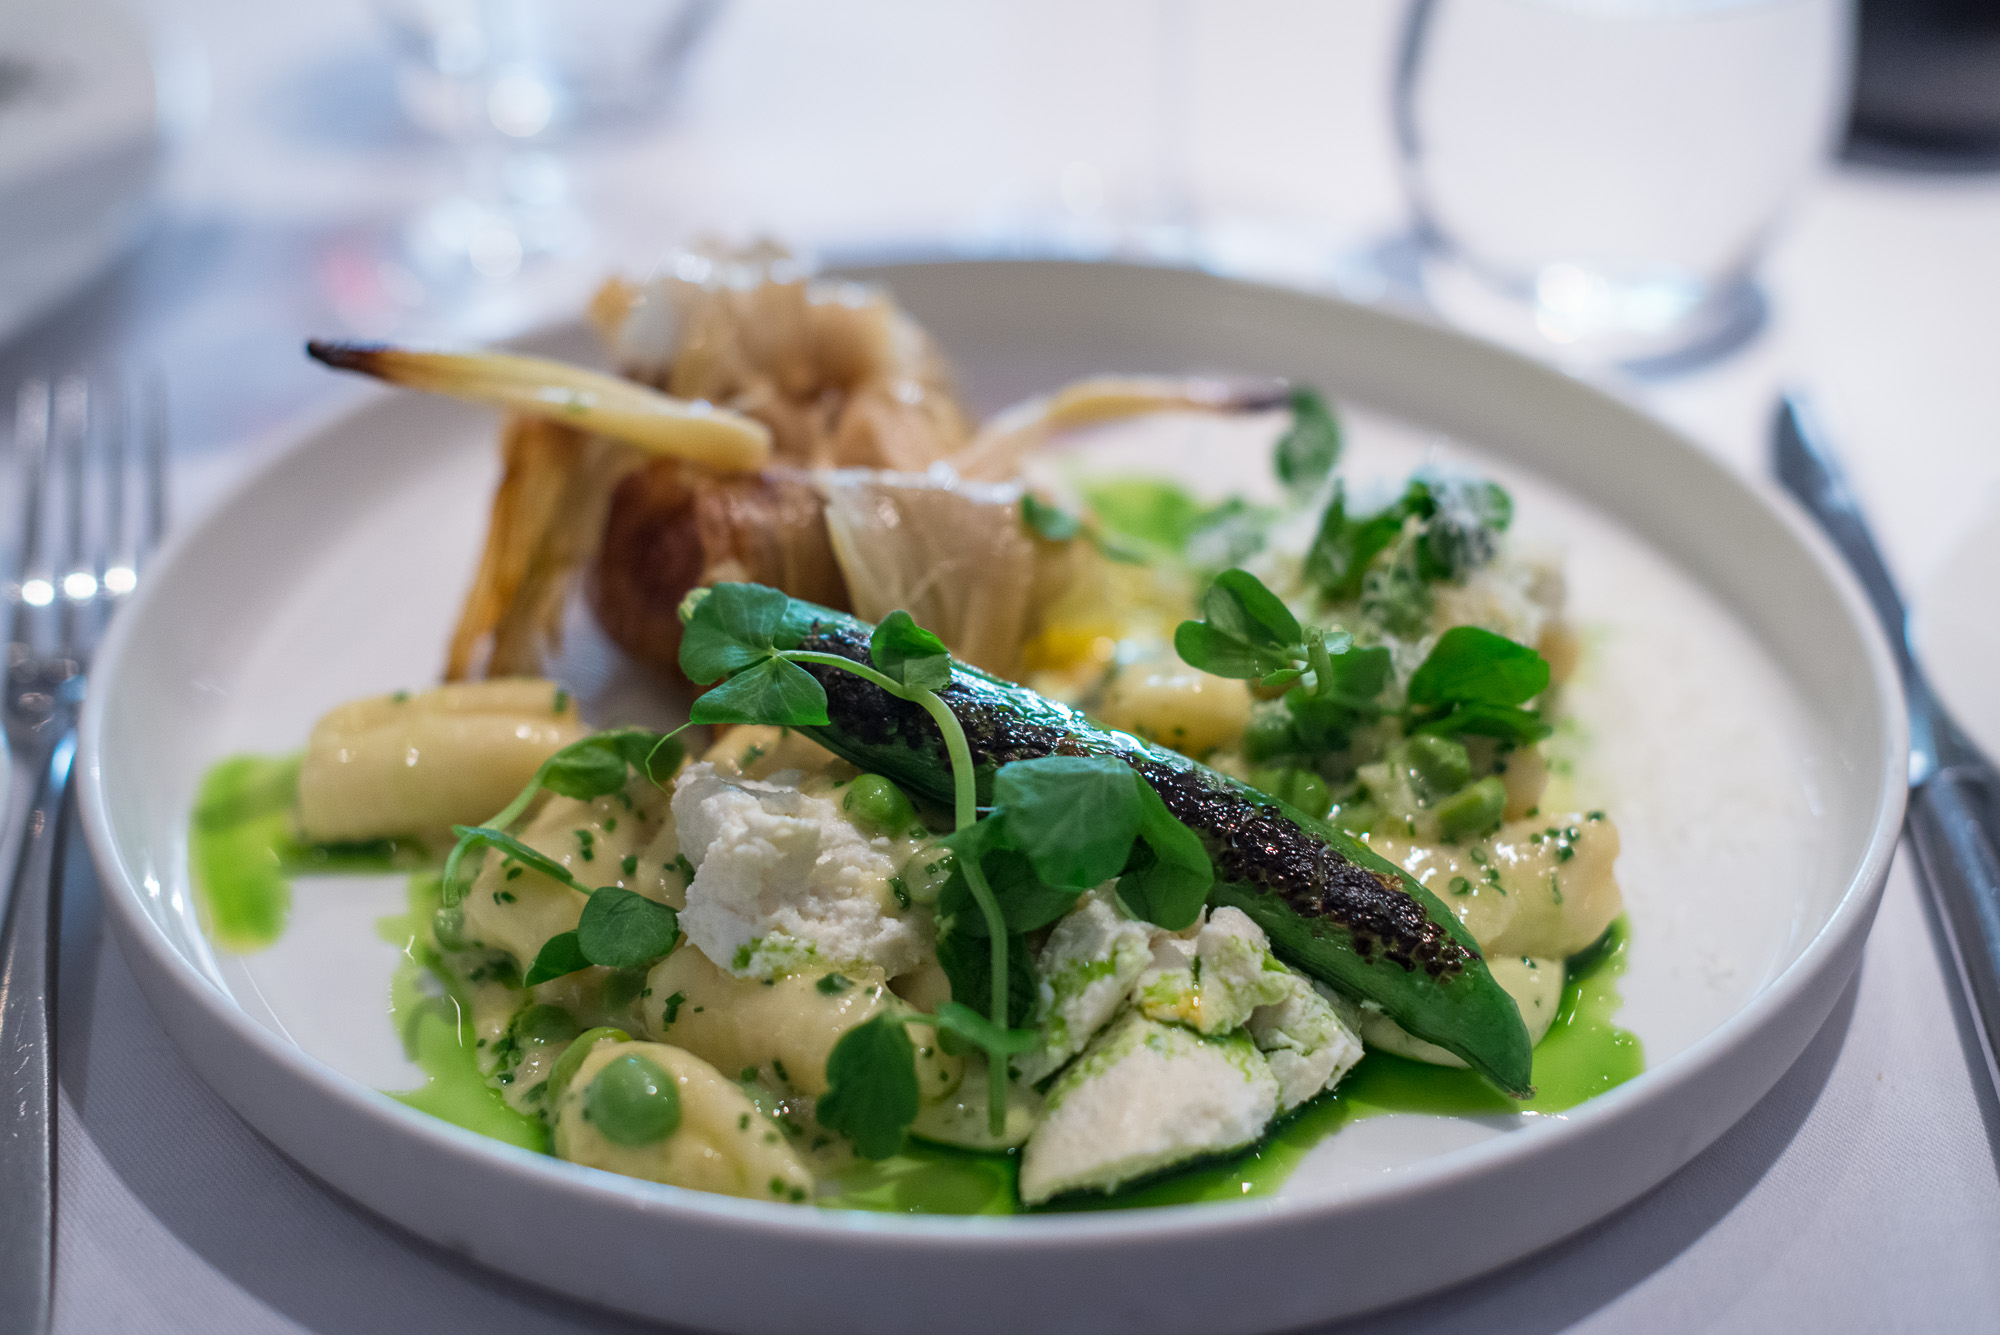 Westcombe ricotta and garlic gnocchi, English pea and parmesan